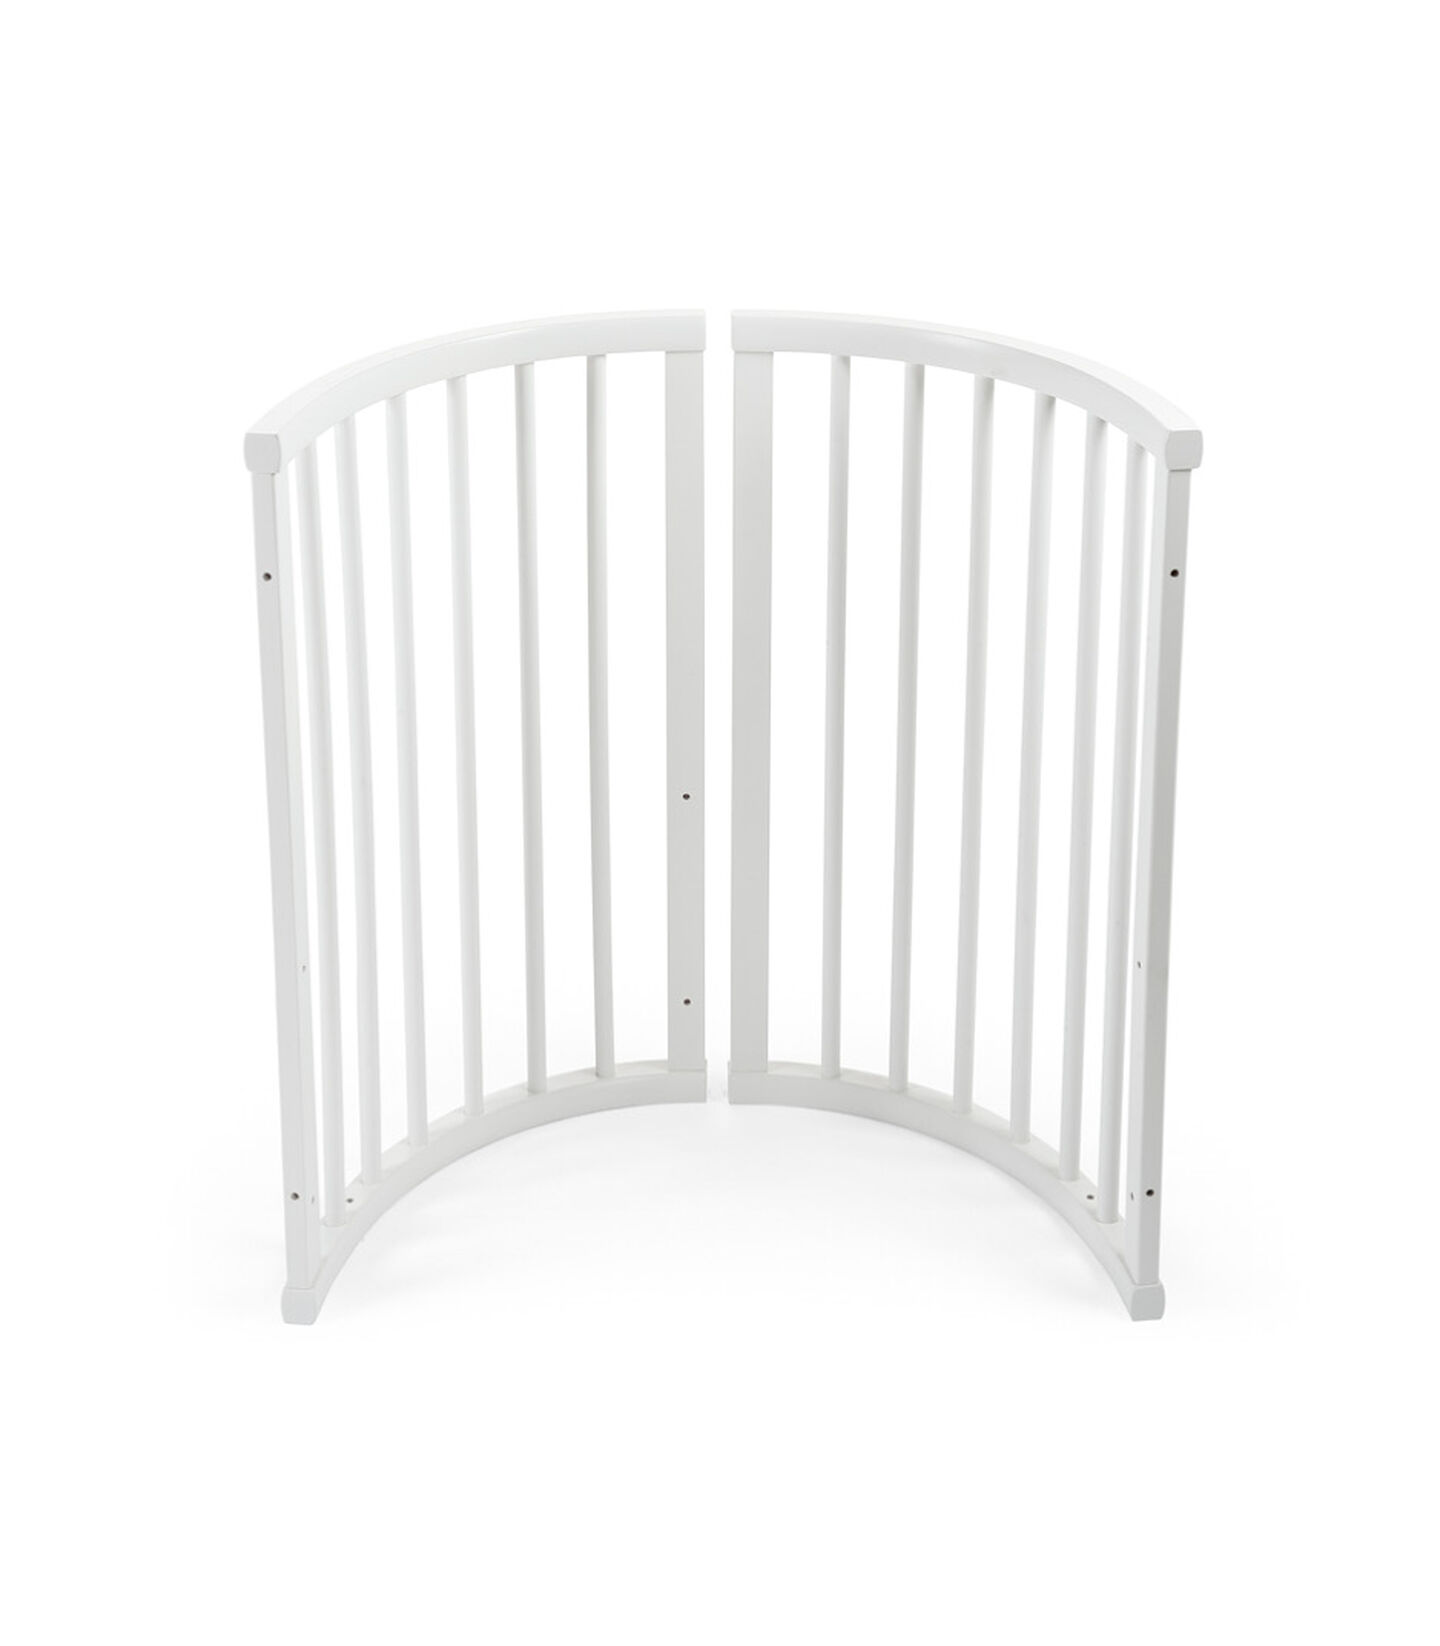 Stokke® Sleepi™ End section R Blanco, Blanco, mainview view 2